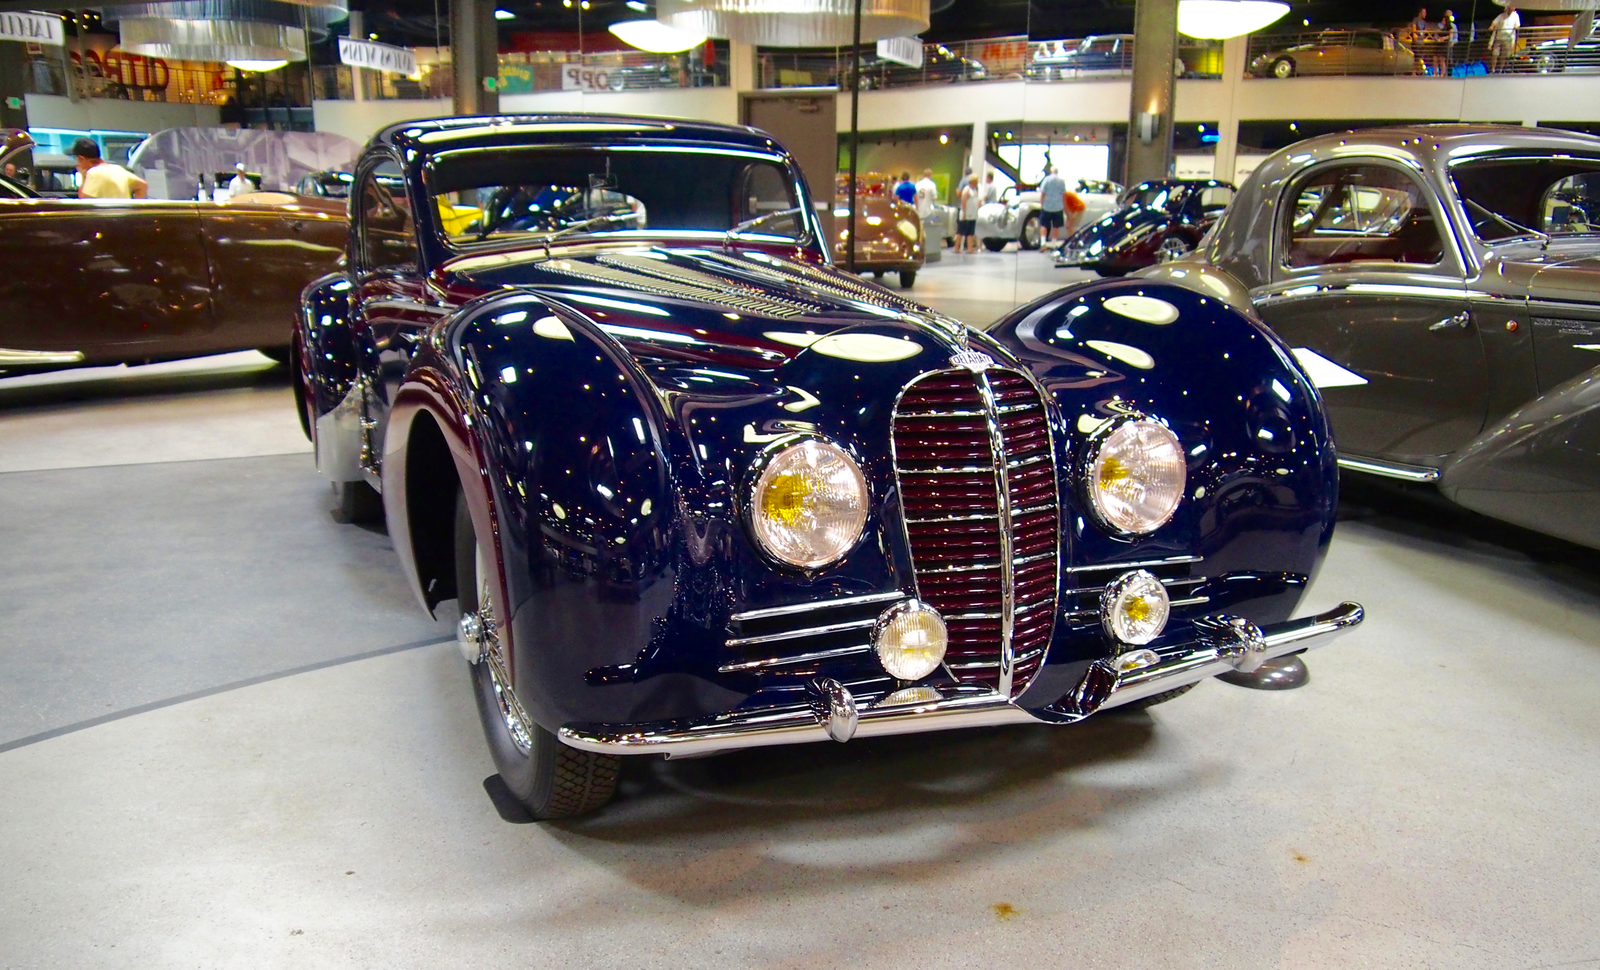 A really pretty 1938 Delahaye Type 145 V12 Coupe with body work by Henri Chapron.